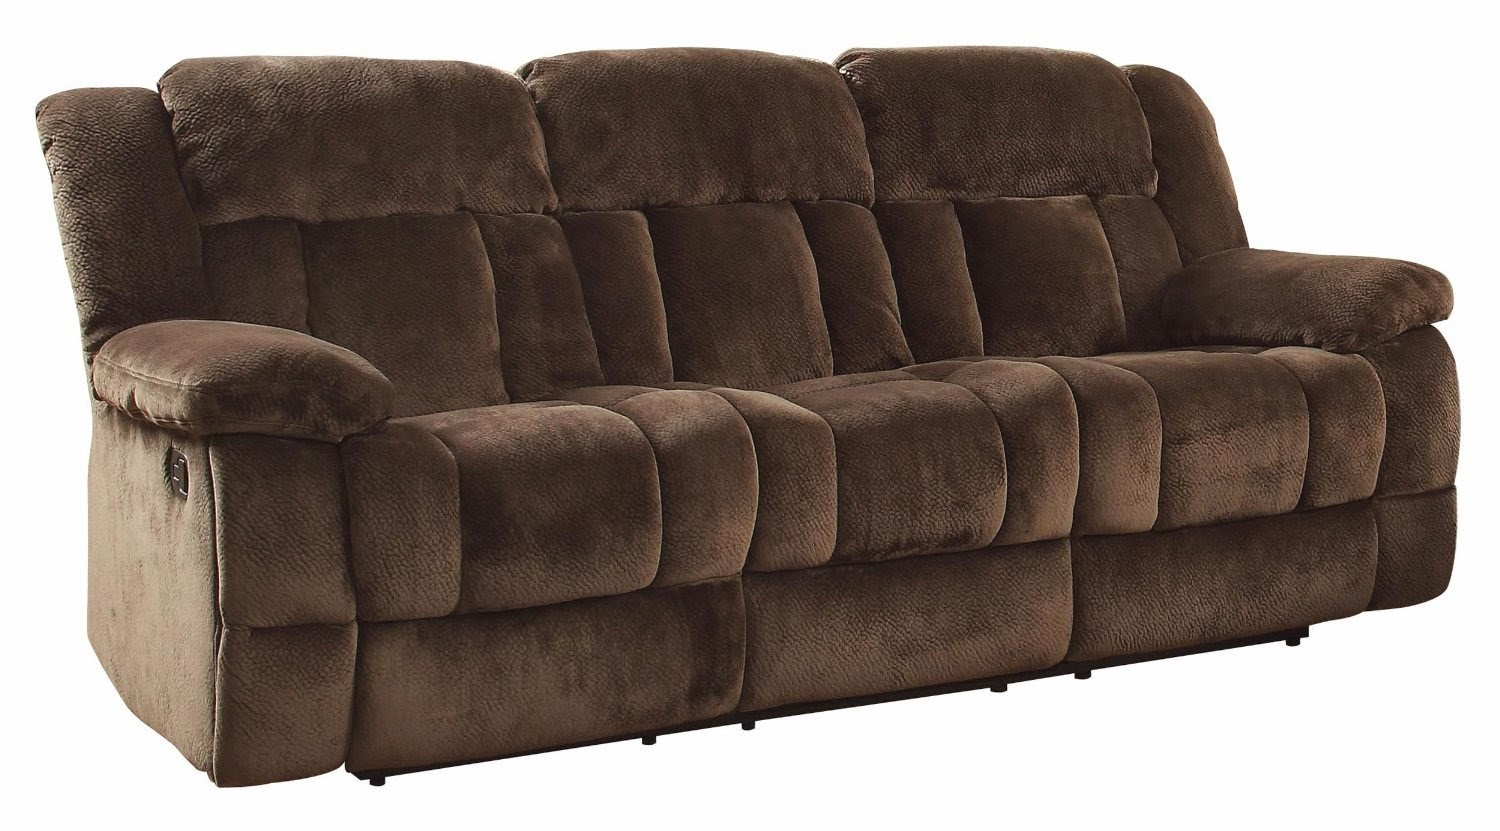 Cobra Dual Reclining Sofa Reviews Cindy Crawford Home Sectional The Best Sofas Ratings Eric Double